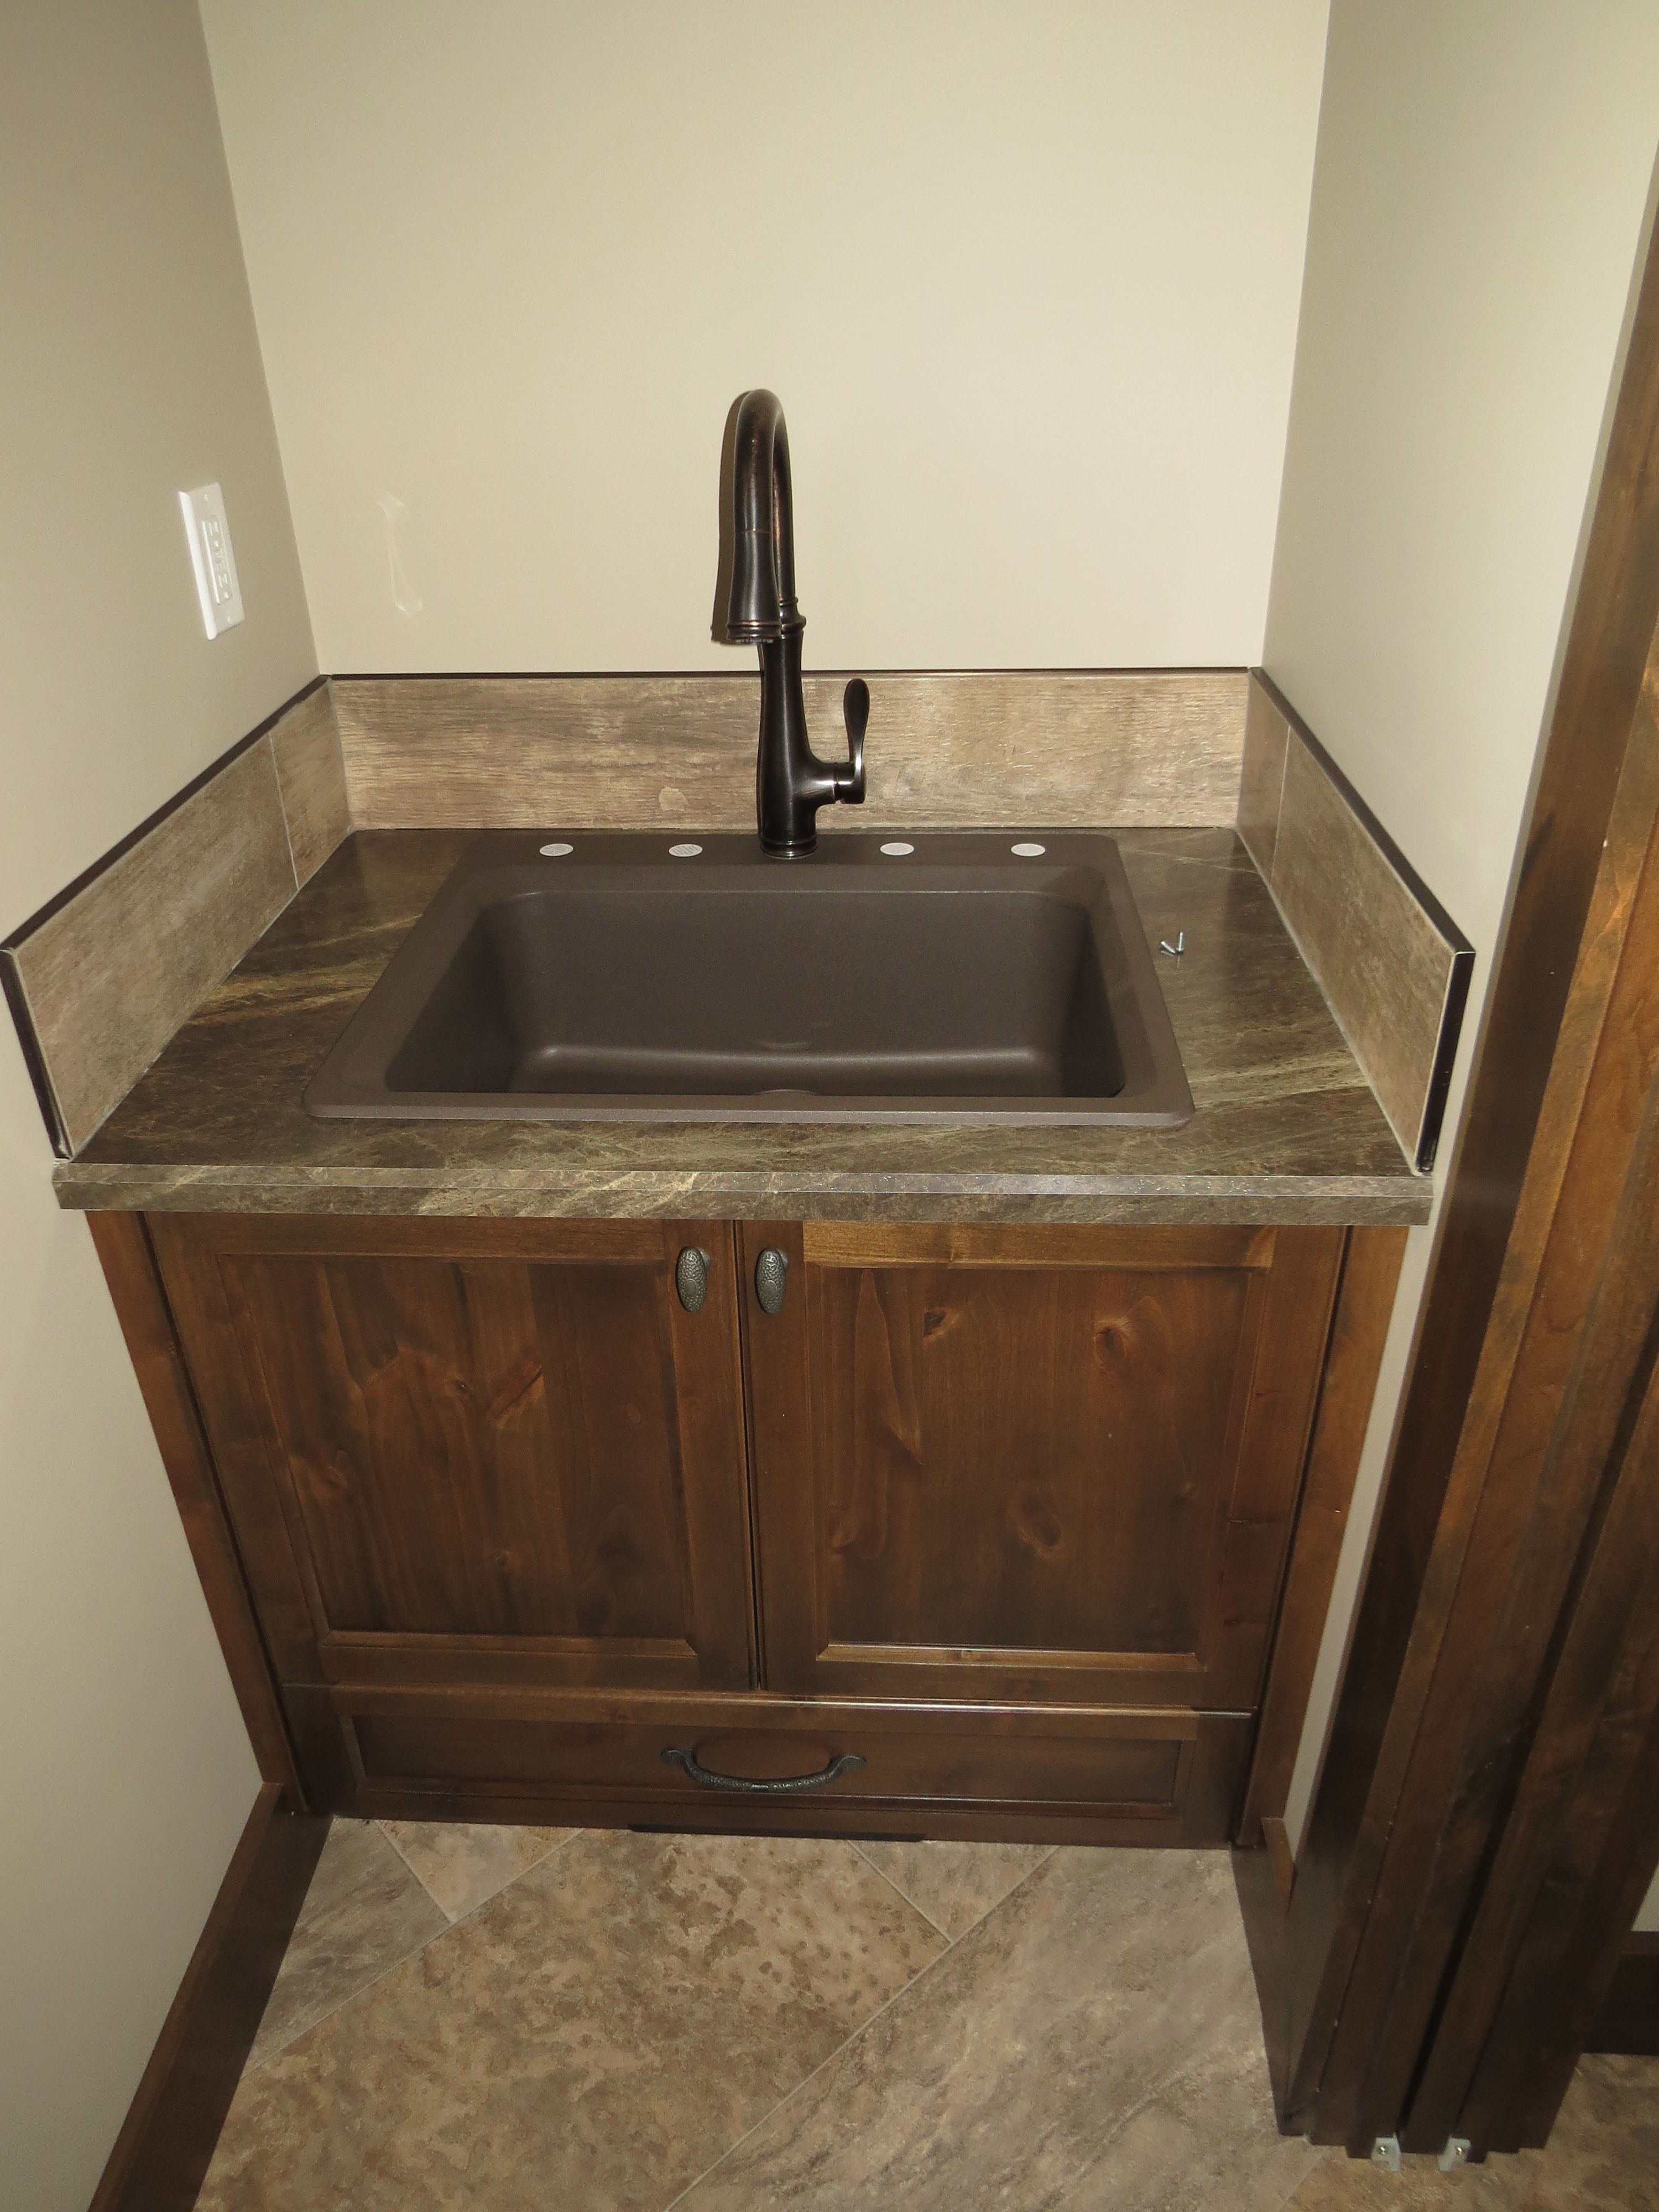 mirrors narrow cabinet bathroom sink sinks cabinets for bathrooms small repurposed with inch double granite vanity